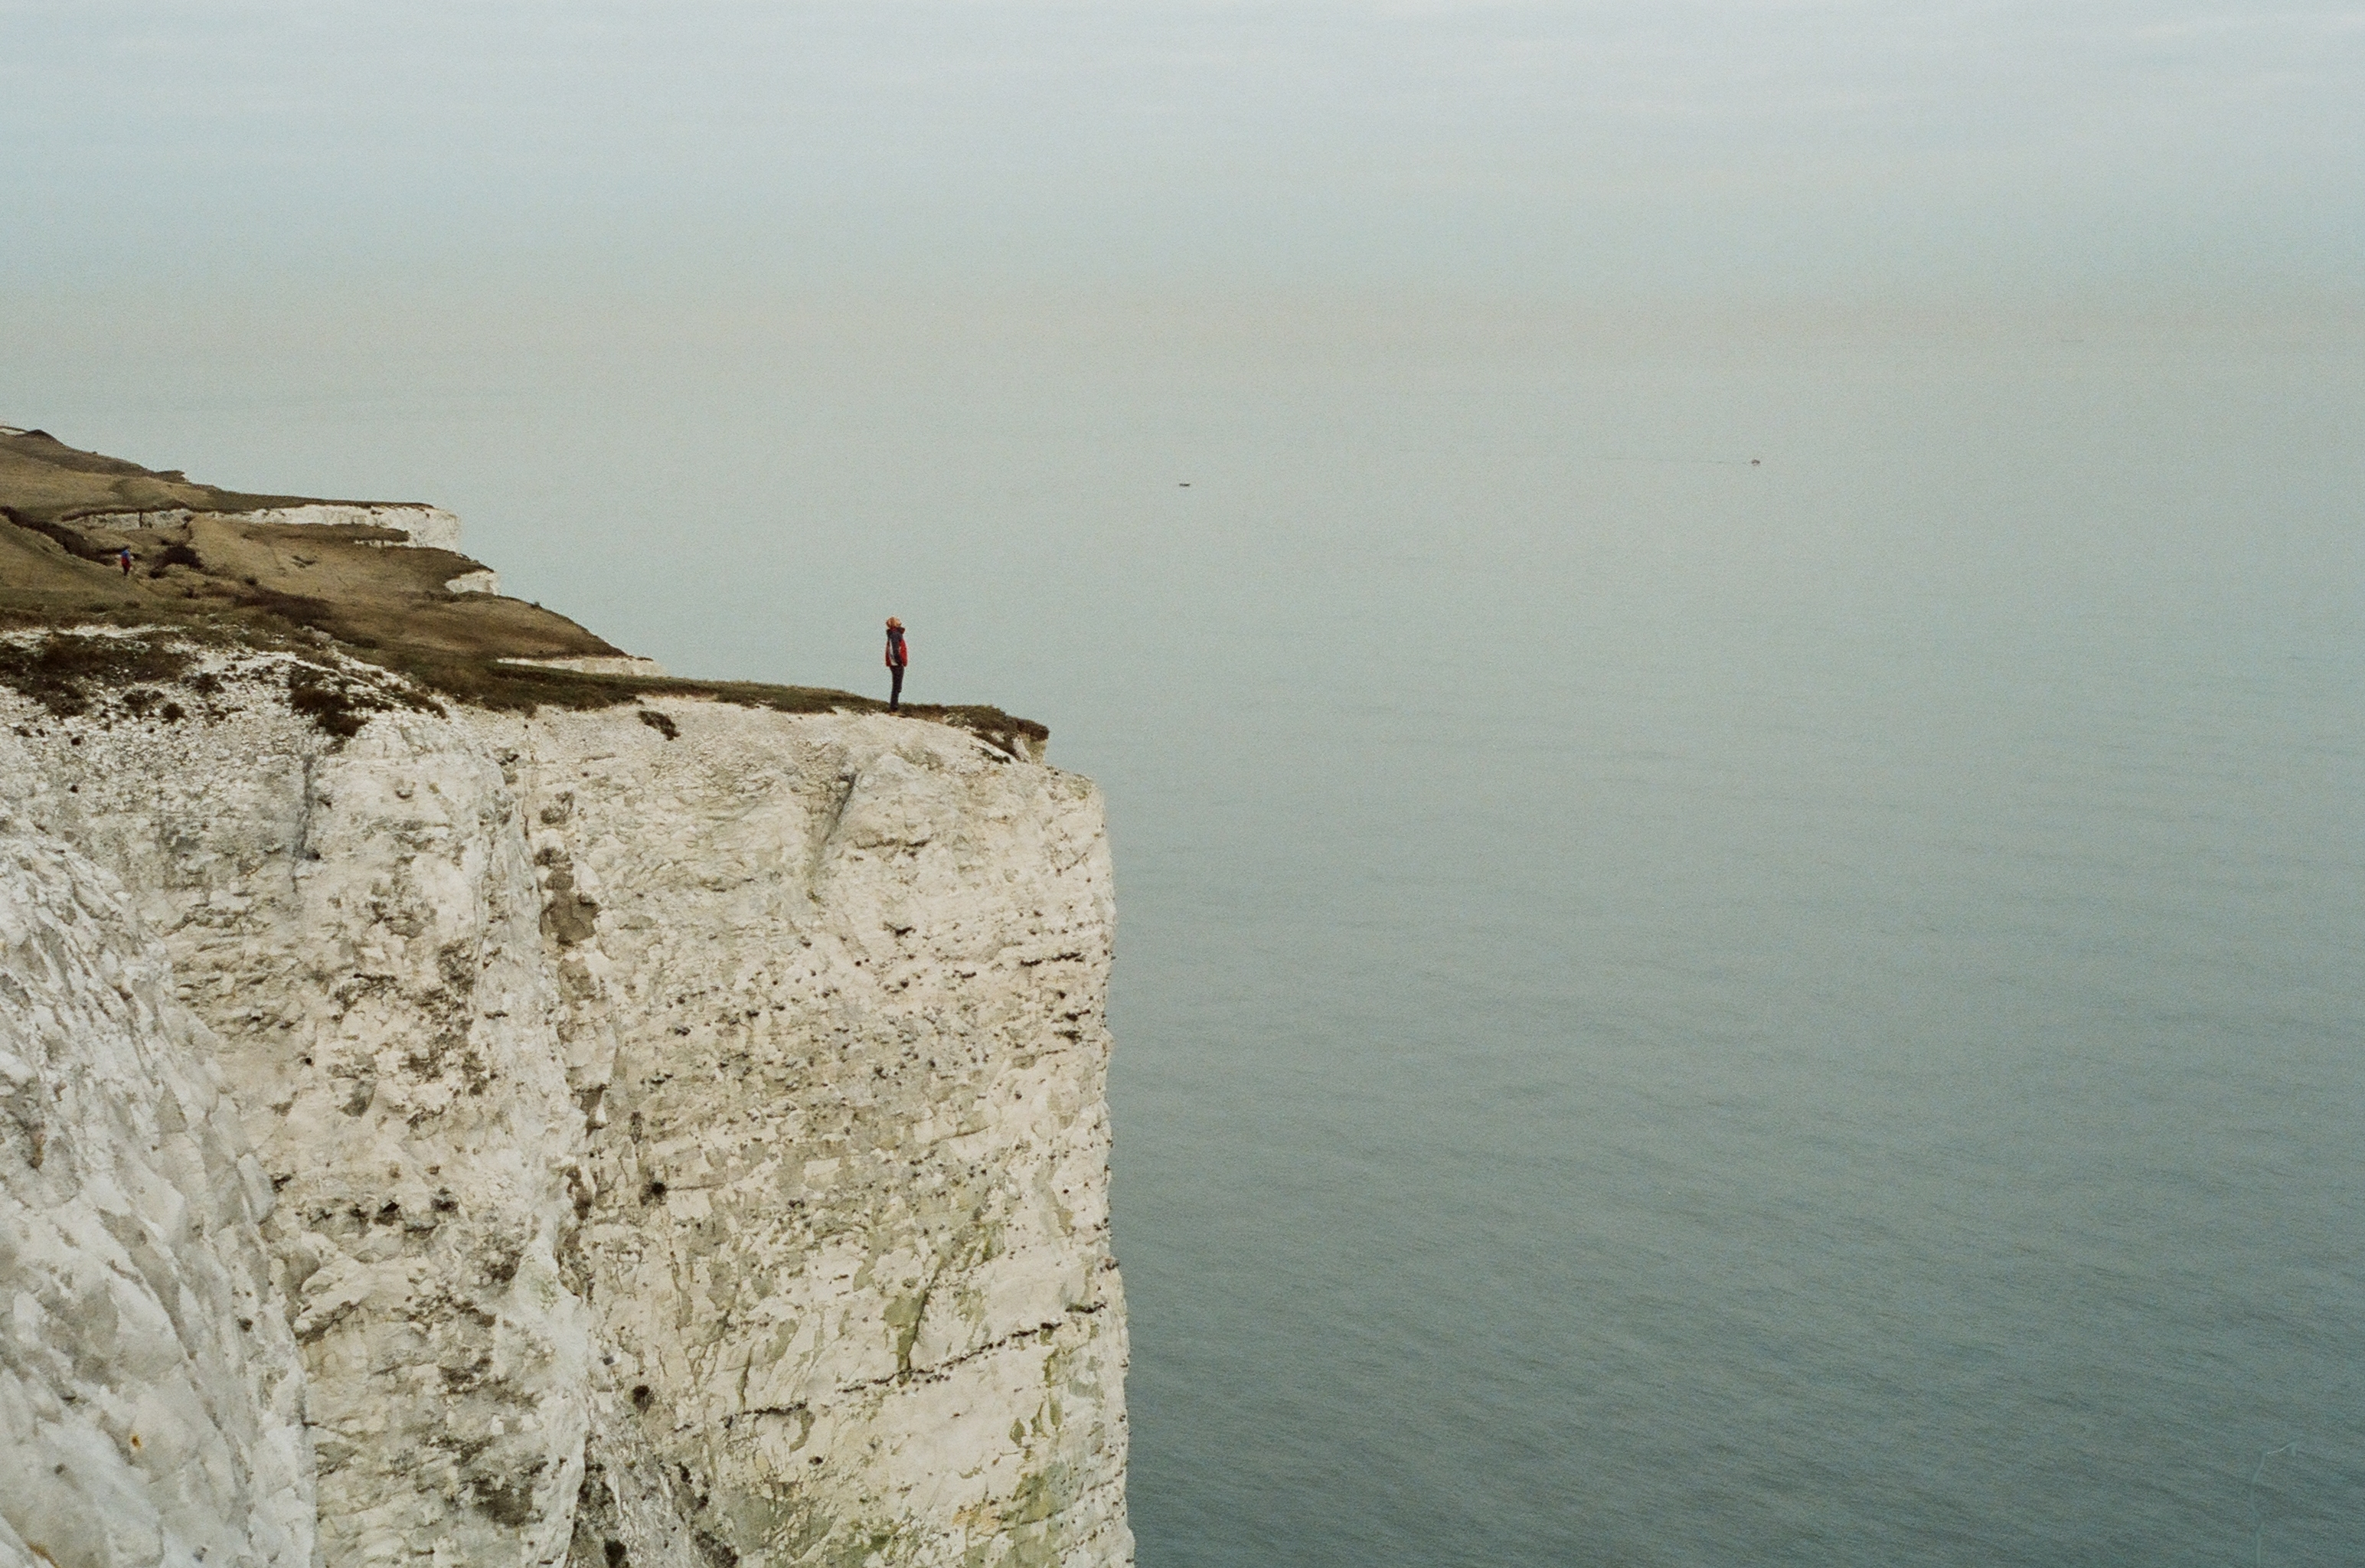 long shot of a person standing on the edge of a cliff surrounded by water